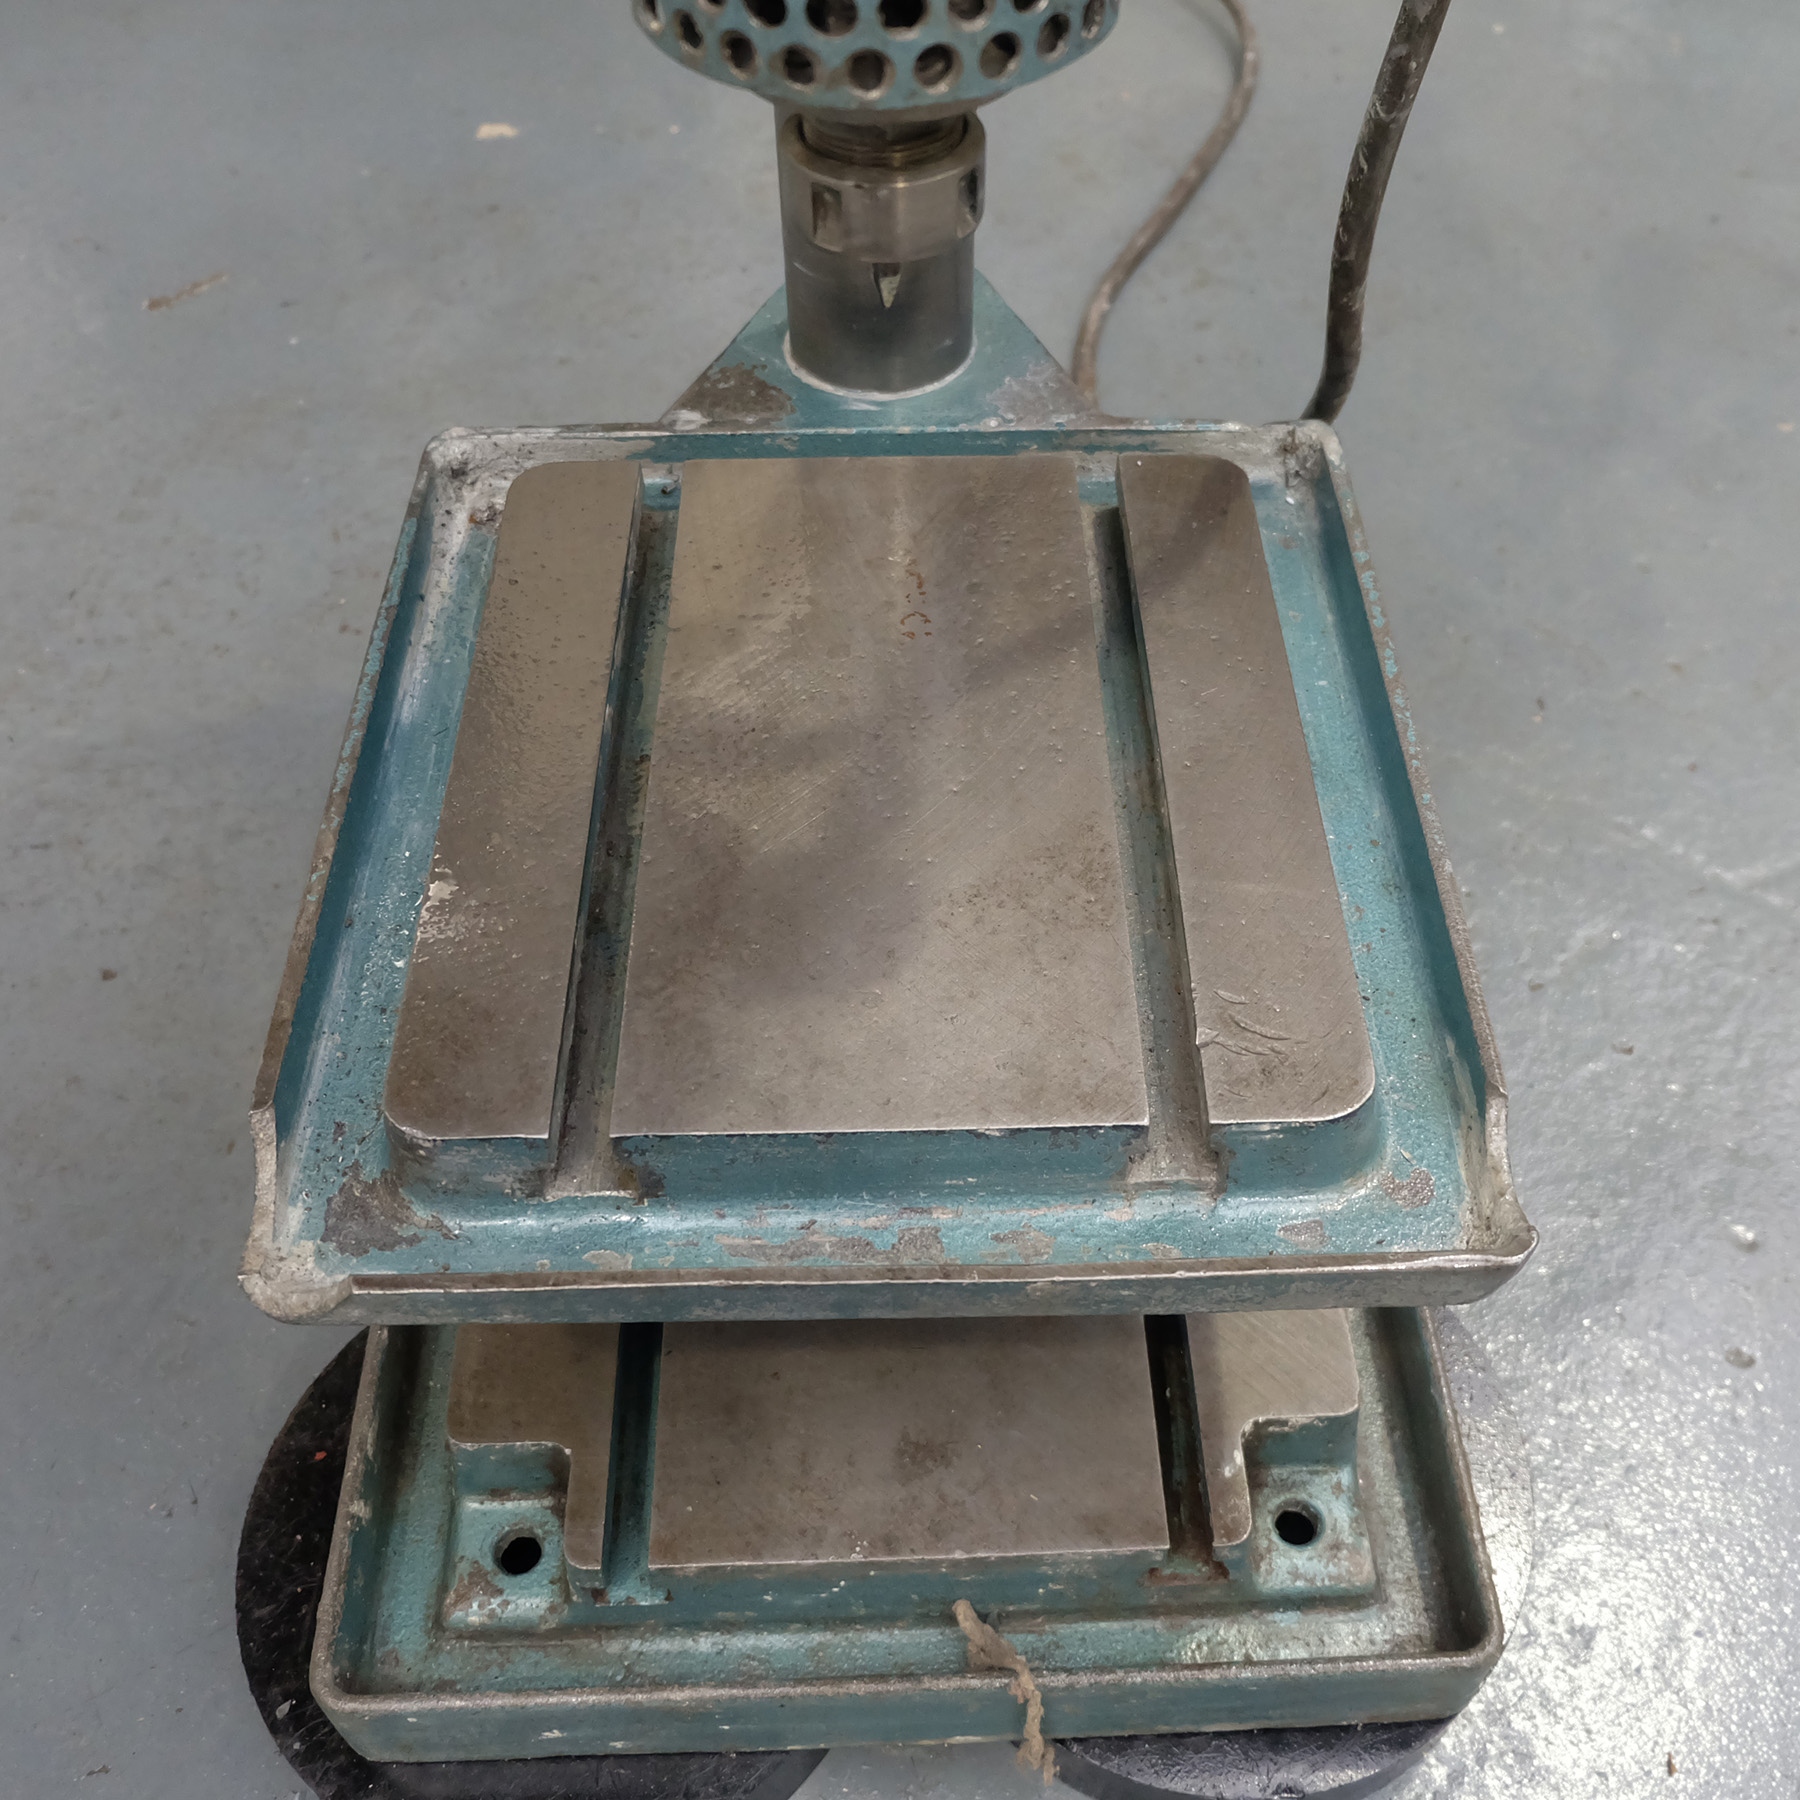 Meddings Type LF2 Bench Drill. Spindle Speeds 500-4000rpm. - Image 4 of 5